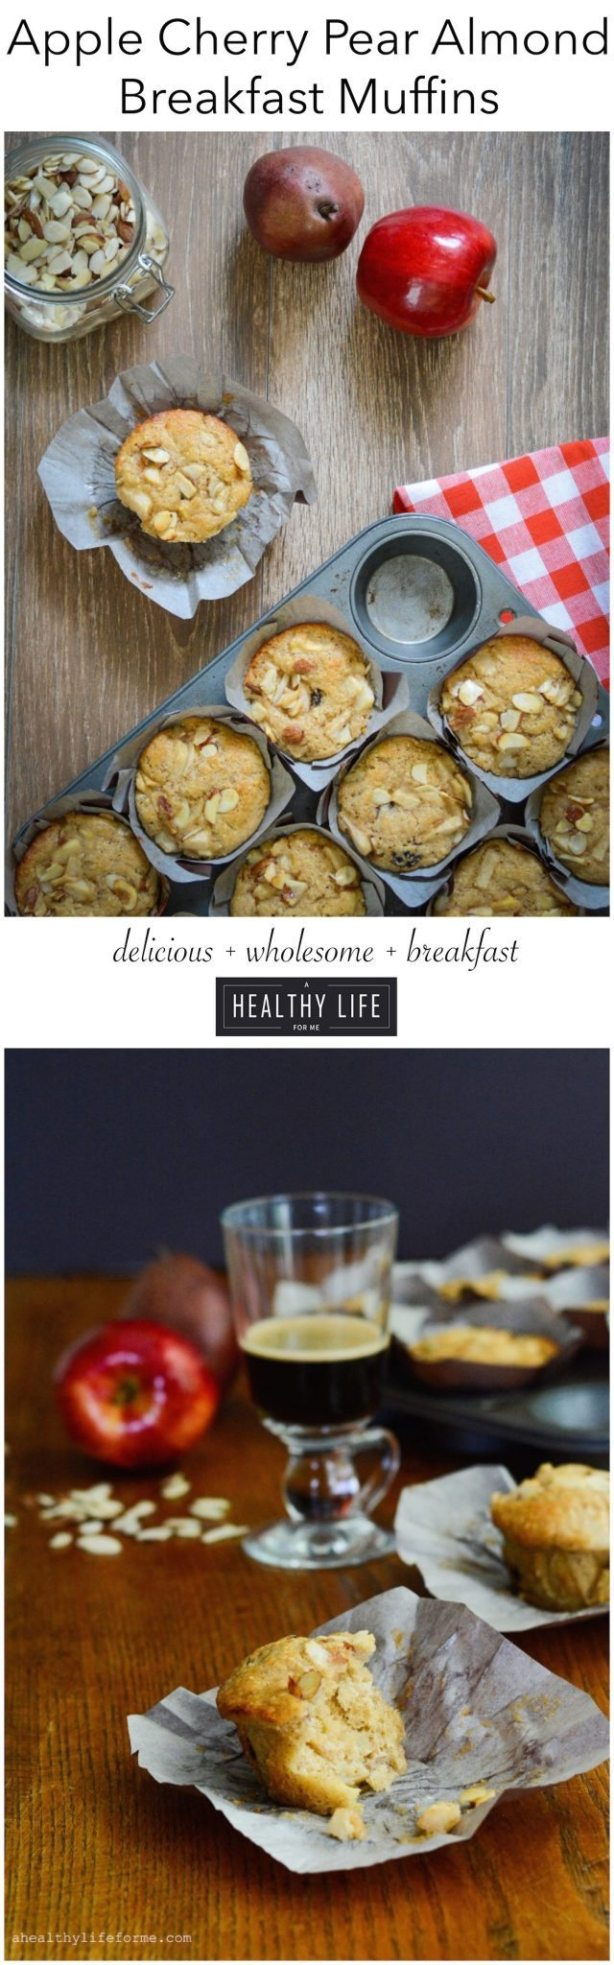 Apple Cherry Pear Almond Breakfast Muffin Recipe Delicious Wholesome Satisfying | ahealthylifeforme.com